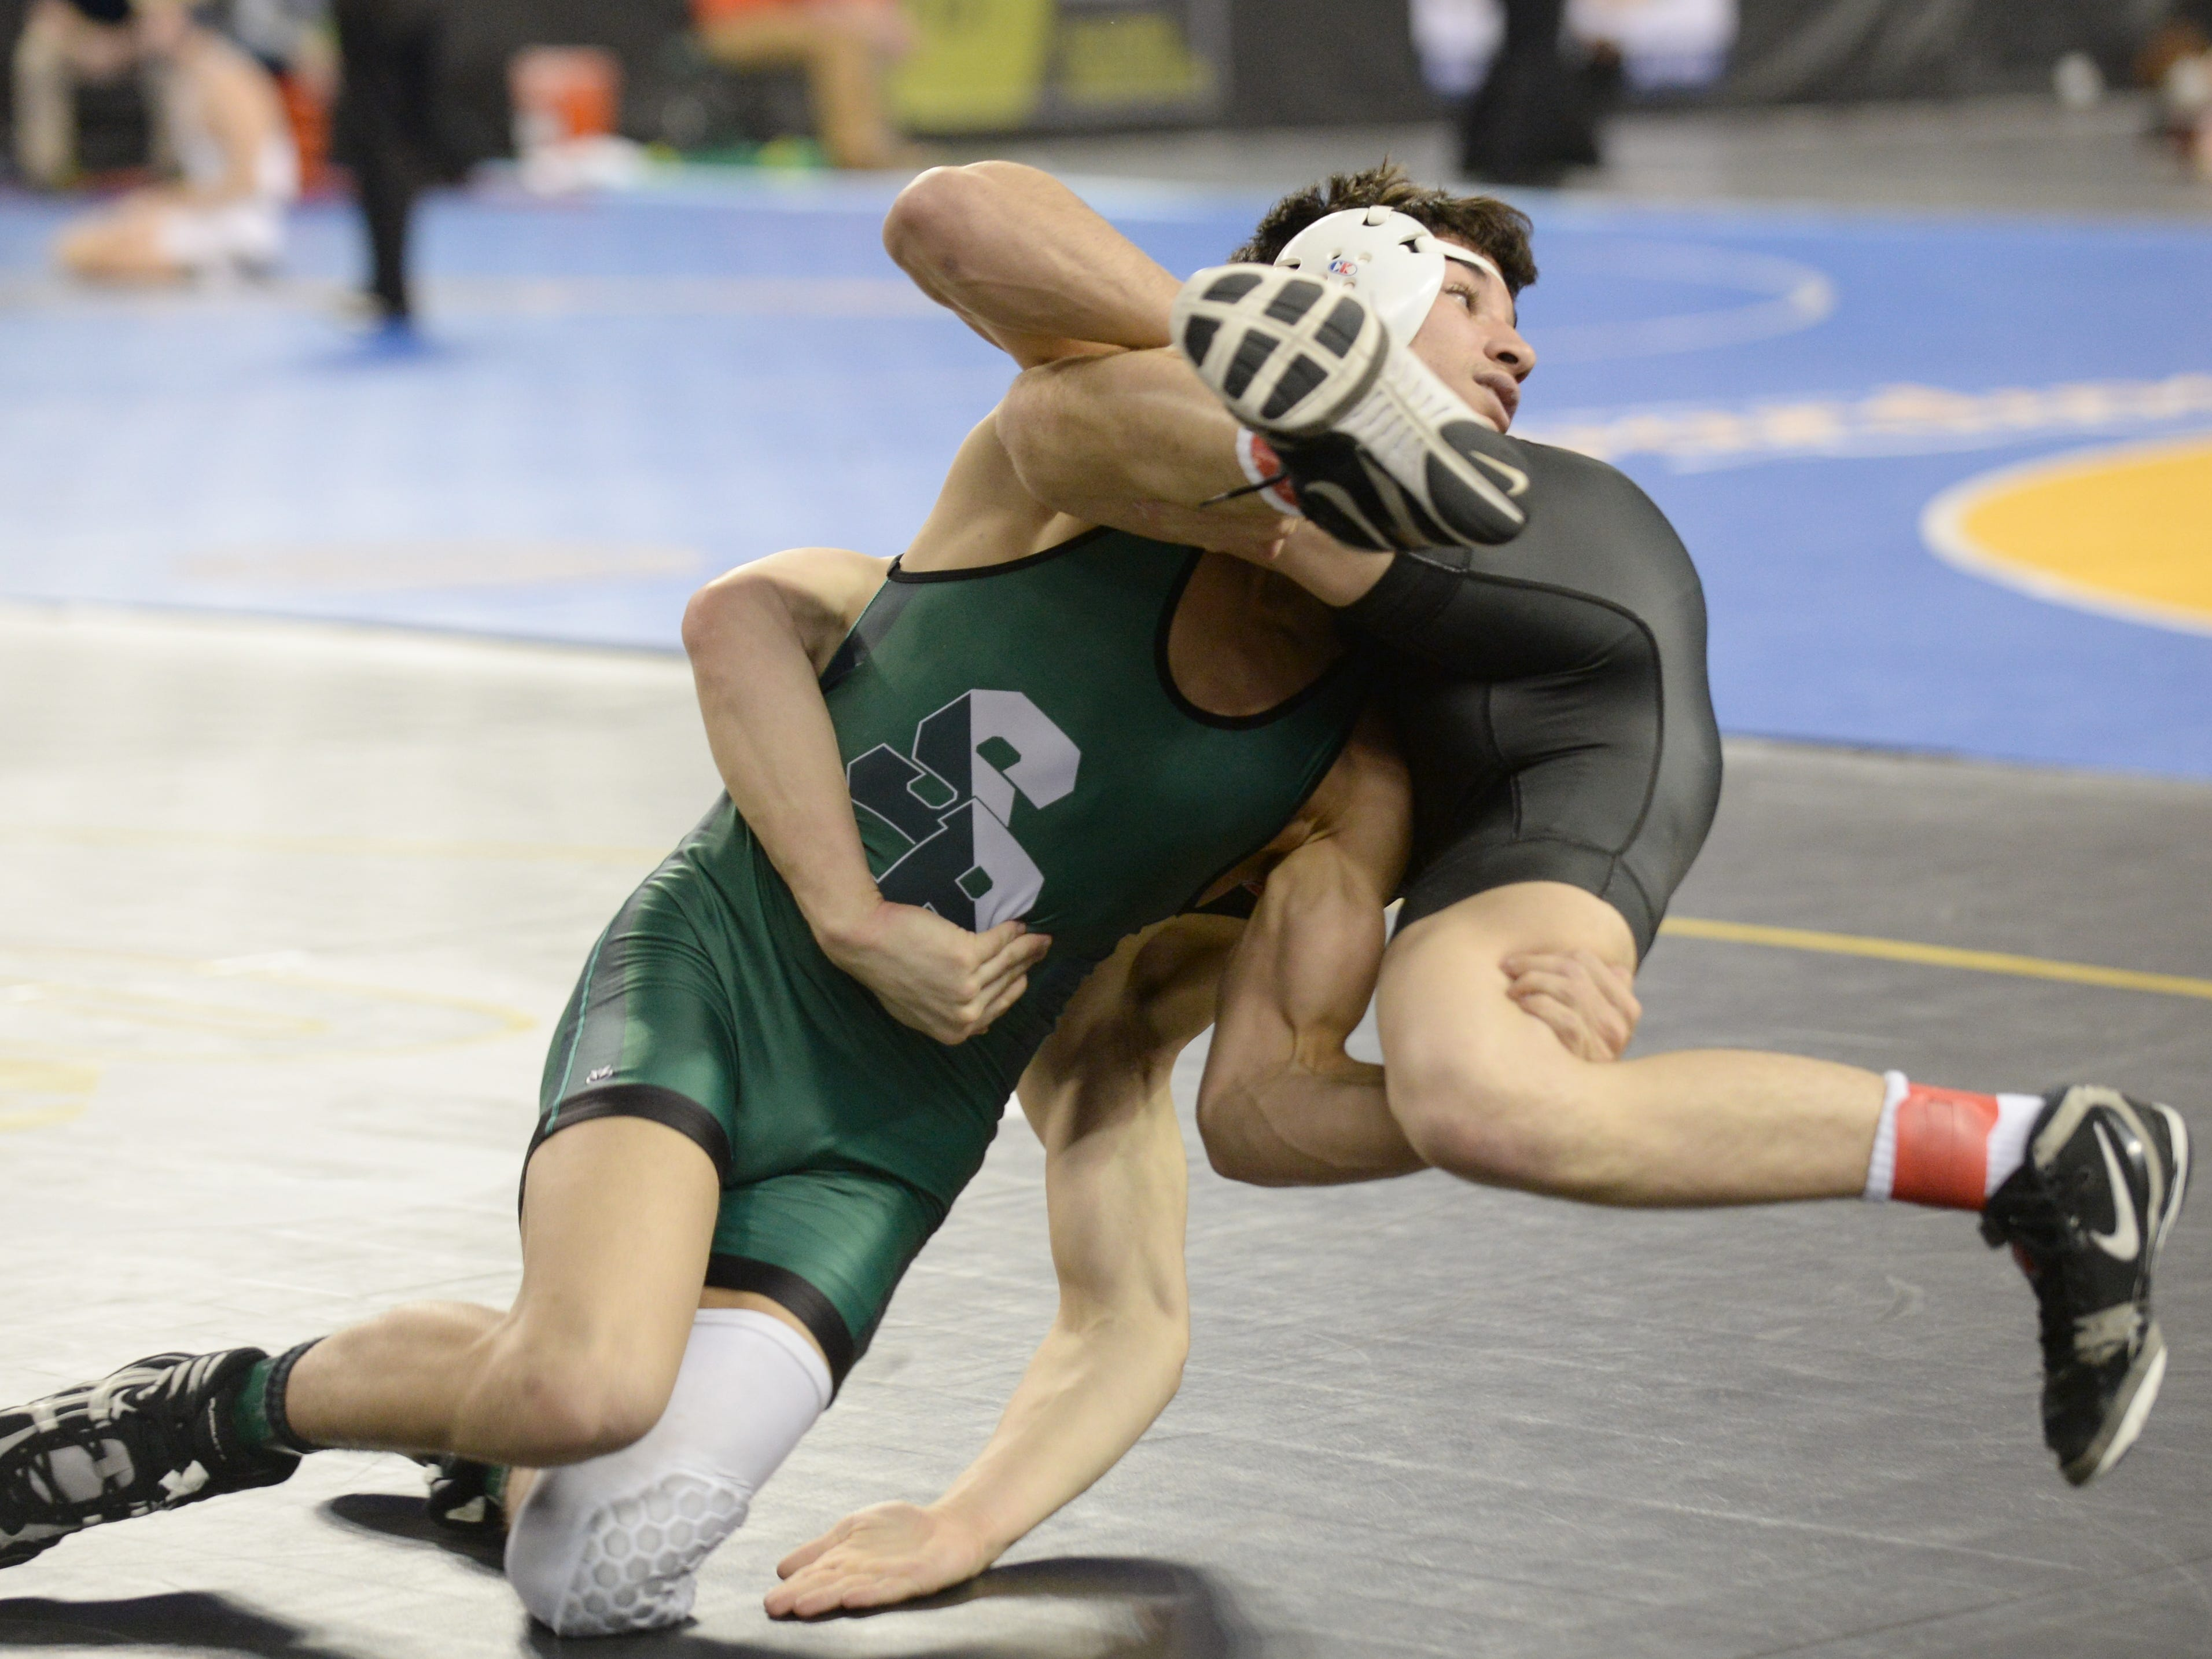 South Plainfield's Tommy Fierro takes down Kingsway's Finnegan McFadden in a 132-pound first round bout during the NJSIAA Individual Wrestling Championships at Boardwalk Hall in Atlantic City, Thursday, Feb. 28, 2019.